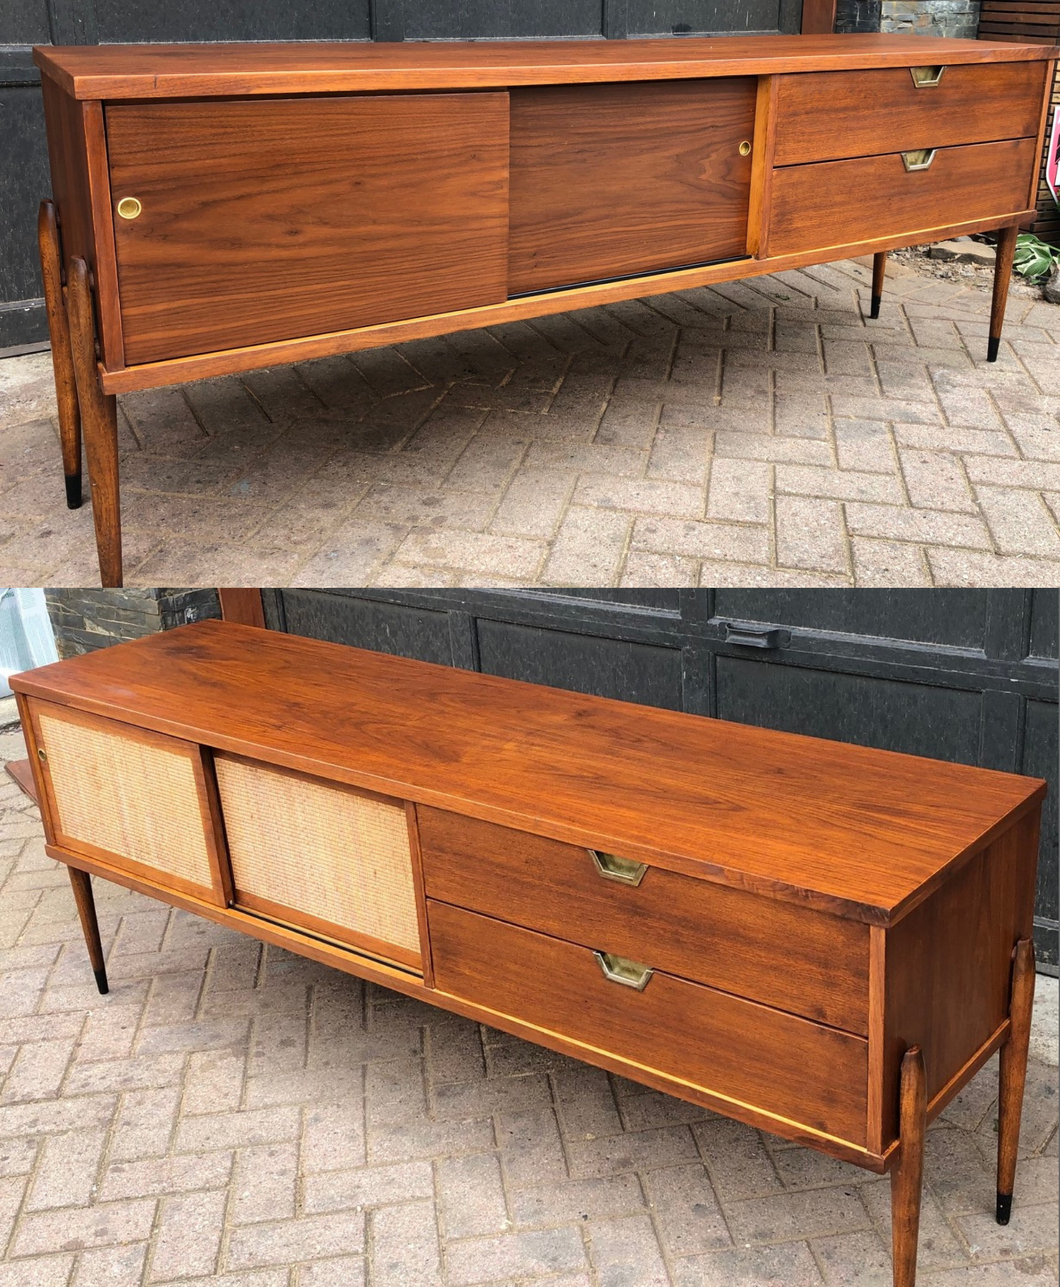 REFINISHED MCM Walnut Media Console or Buffet with reversible doors 72